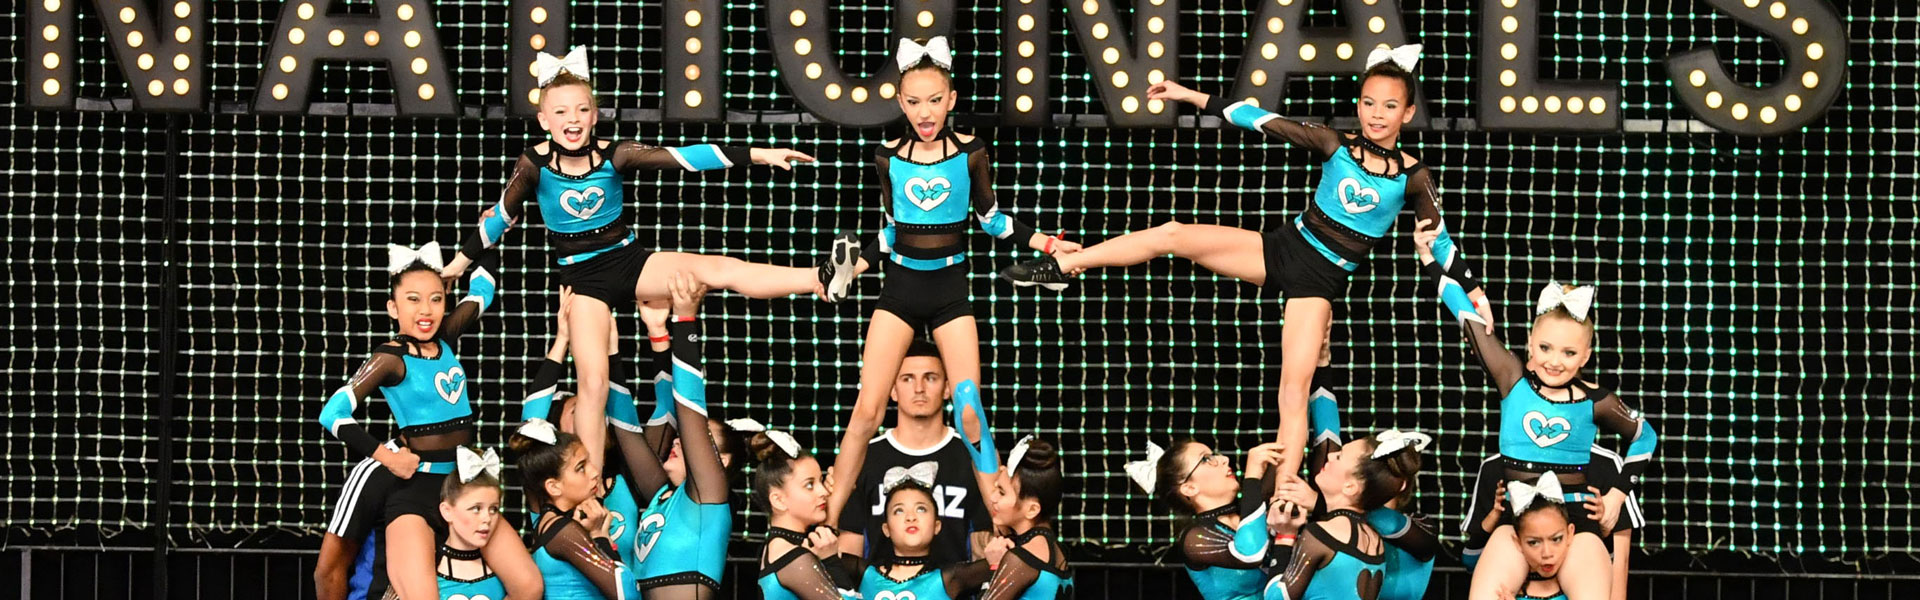 JAA_20968.jpg_1138_OC-ELITE-CHEER-DIAMONDS